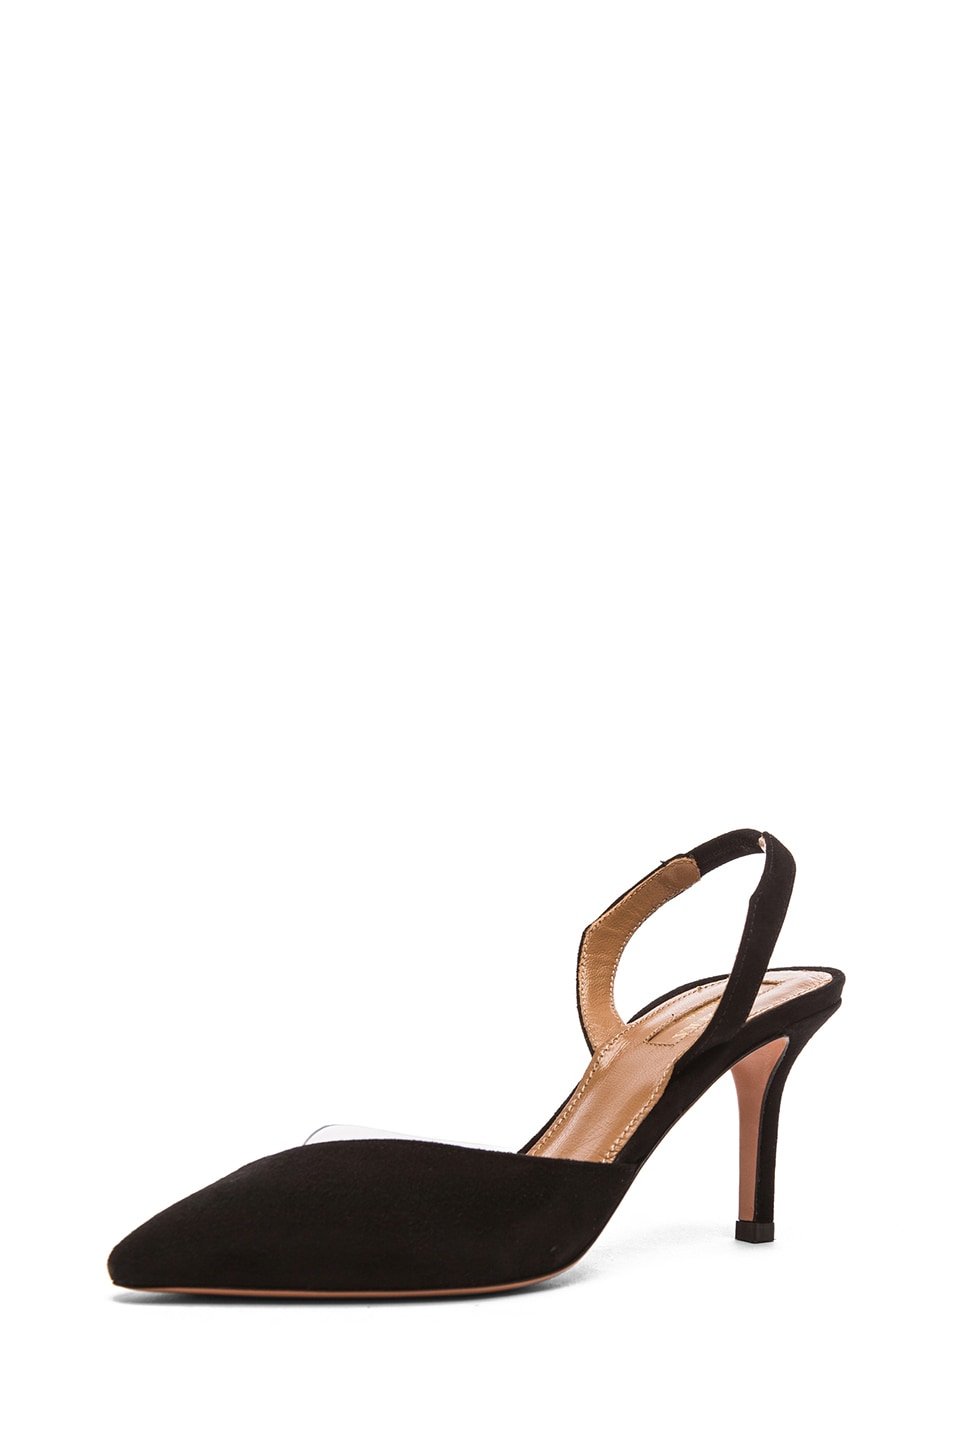 Image 1 of Aquazzura Coco Suede Pumps in Black